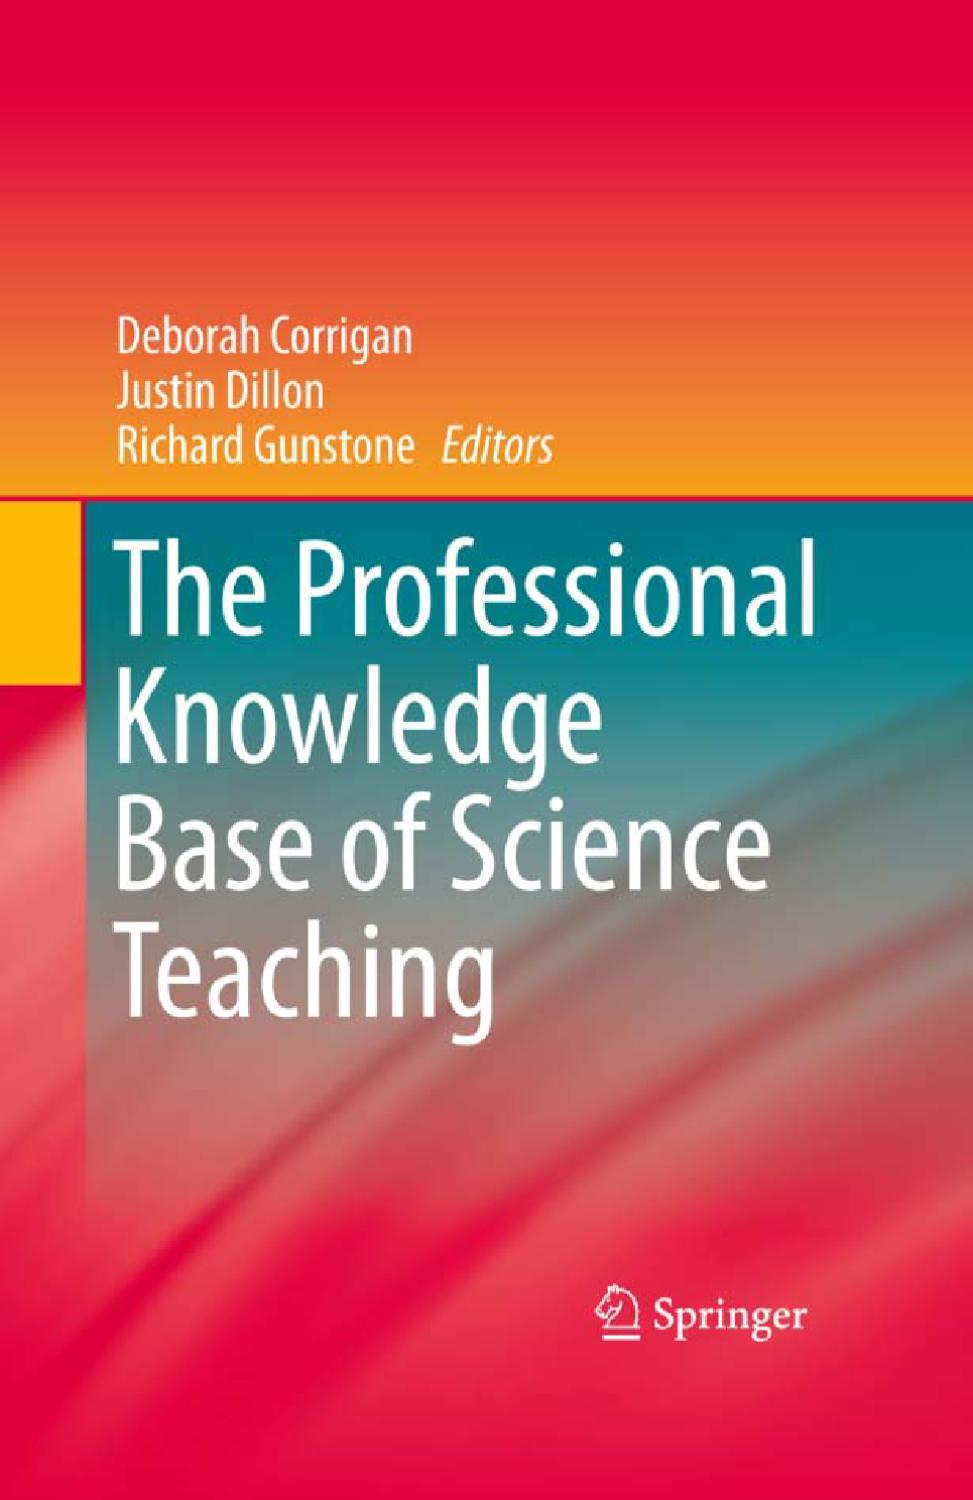 The Professional Knowledge Base of Science Teaching by